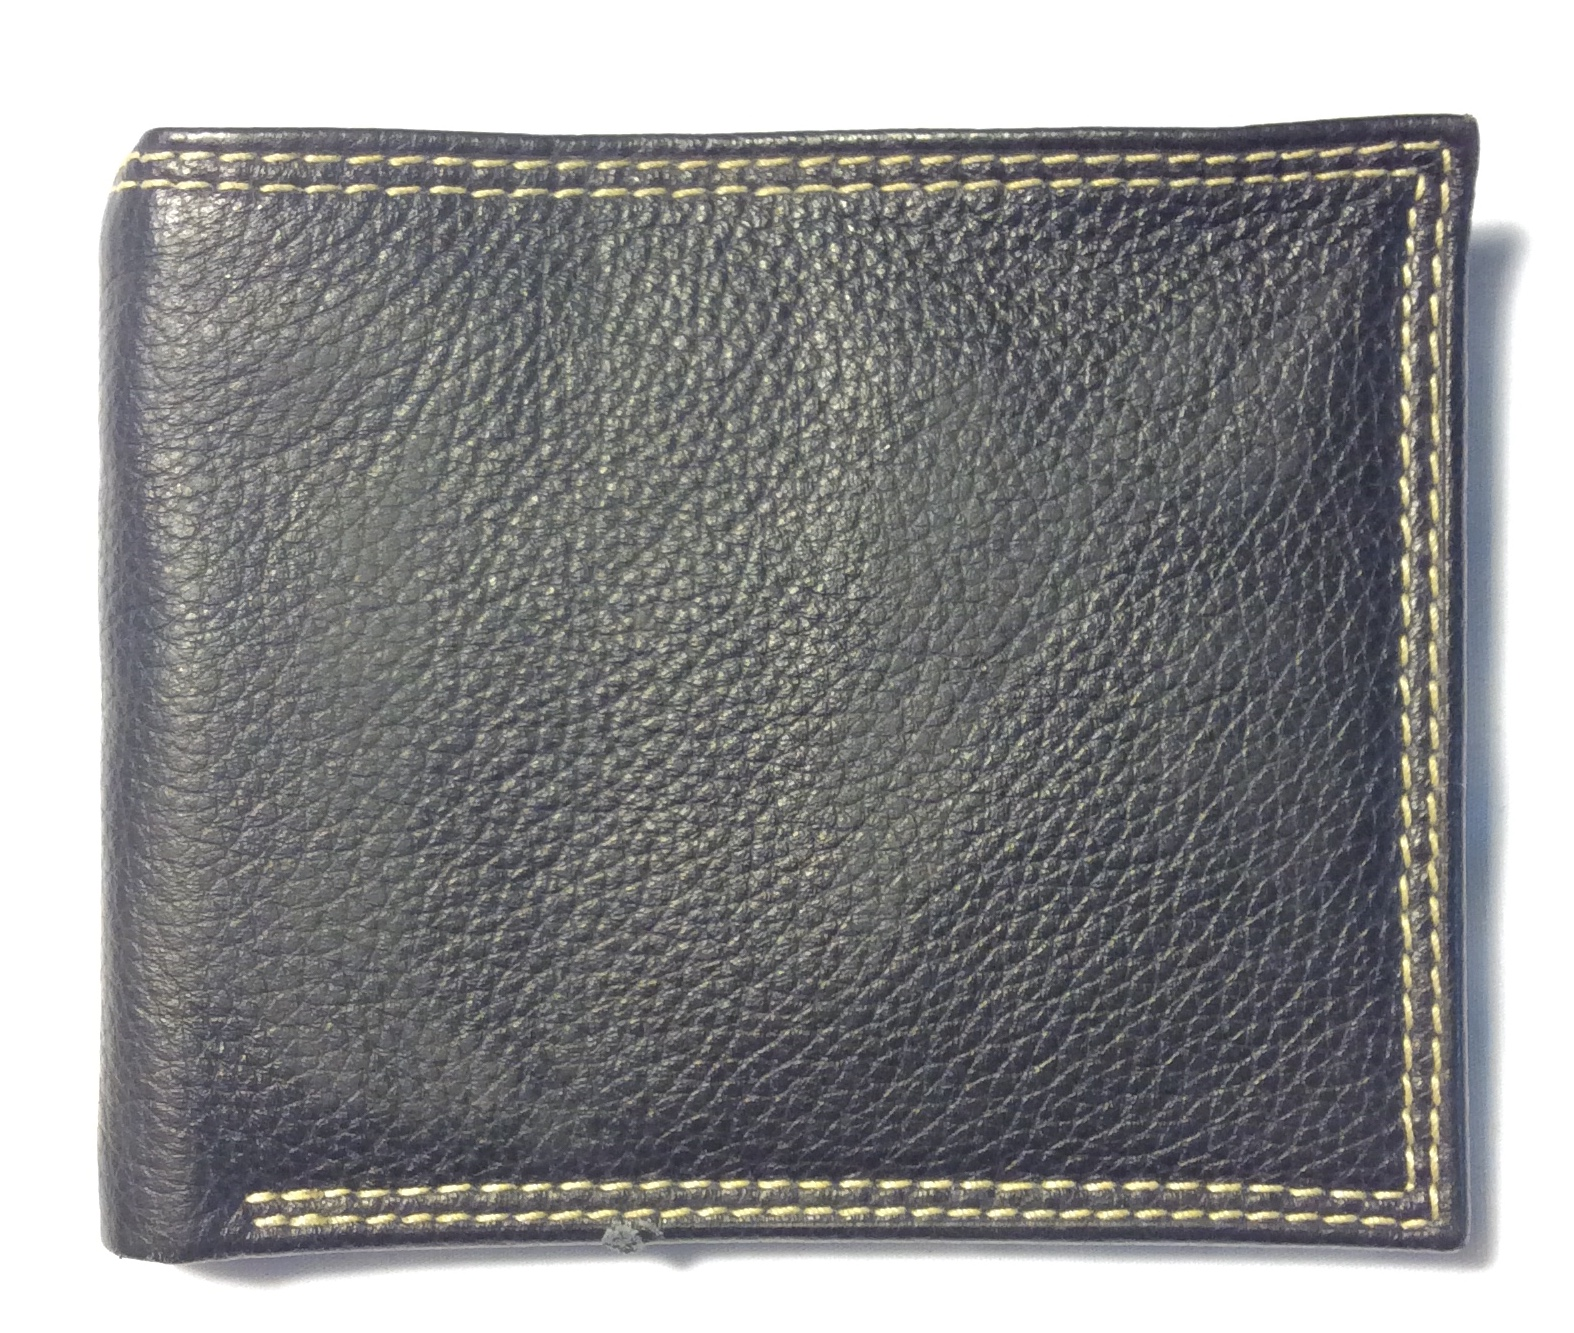 Buxton Black leather with two lines